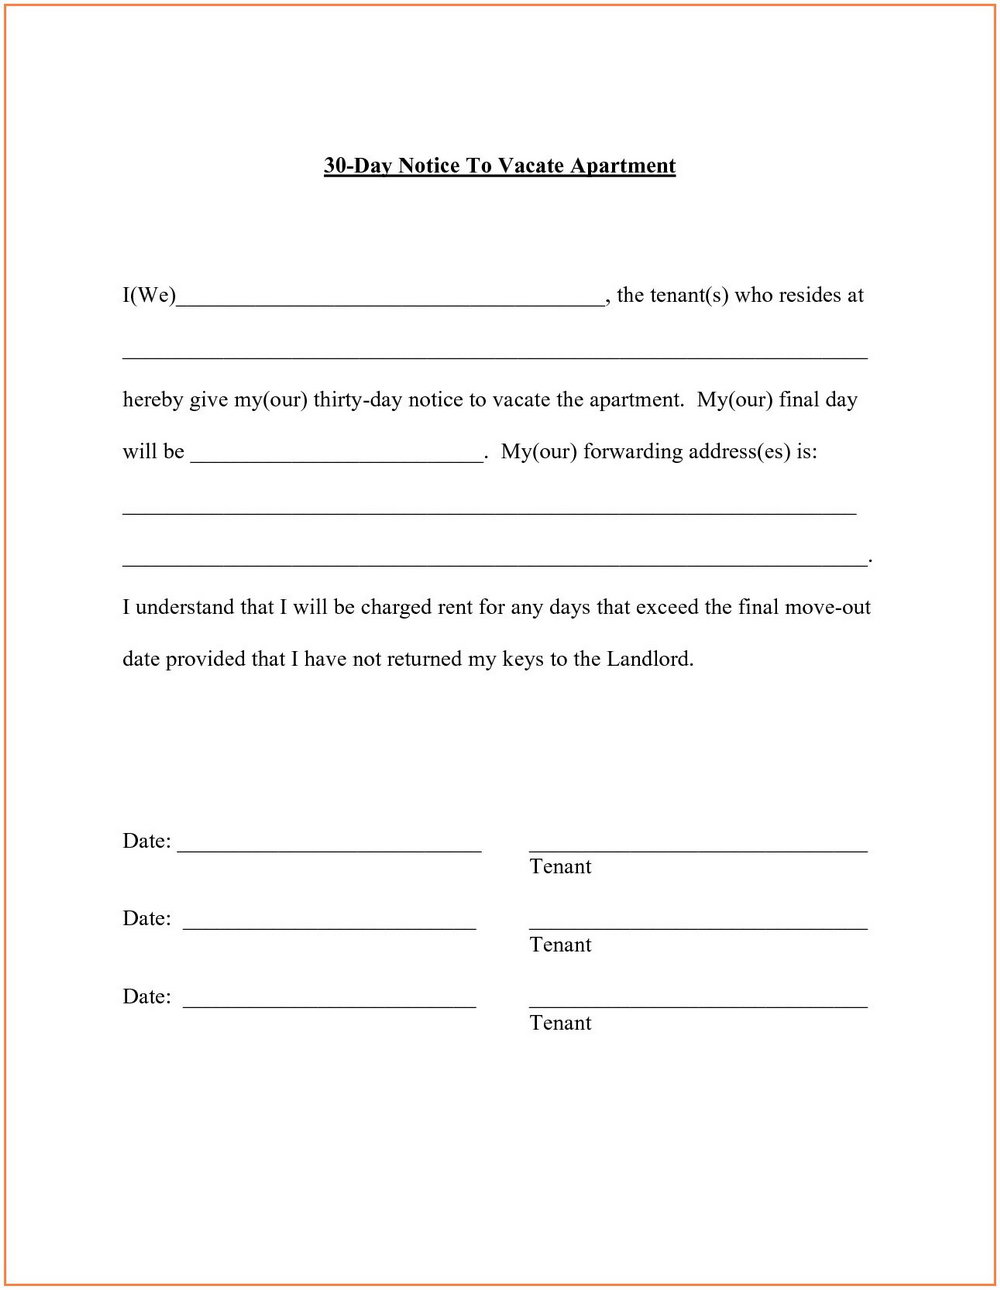 Landlord 30 Day Eviction Notice Template